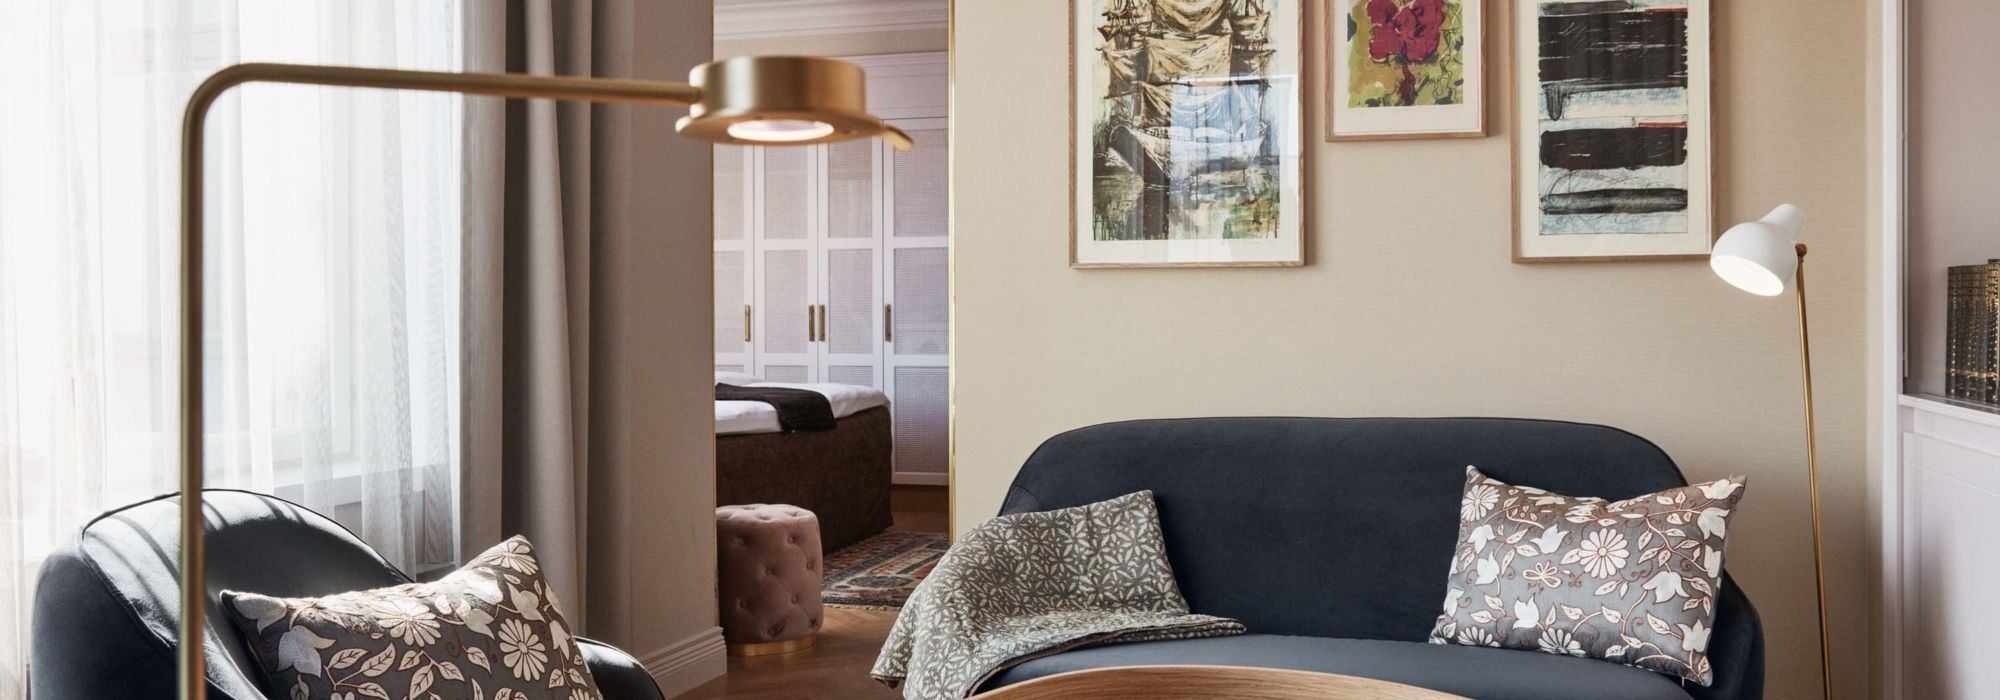 Spend Christmas in a hotel in Helsinki city centre